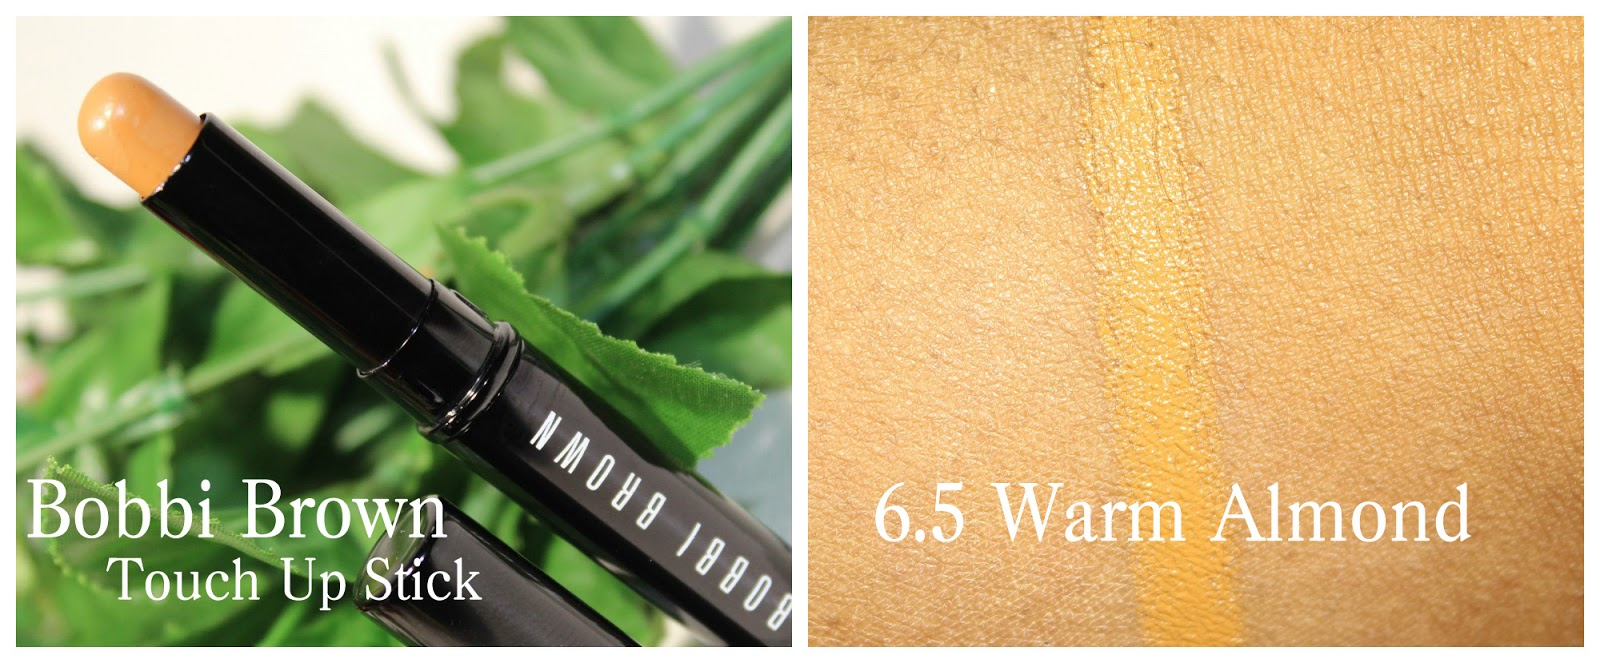 Bobbi Brown Touch Up Stick in 6.5 Warm Almond